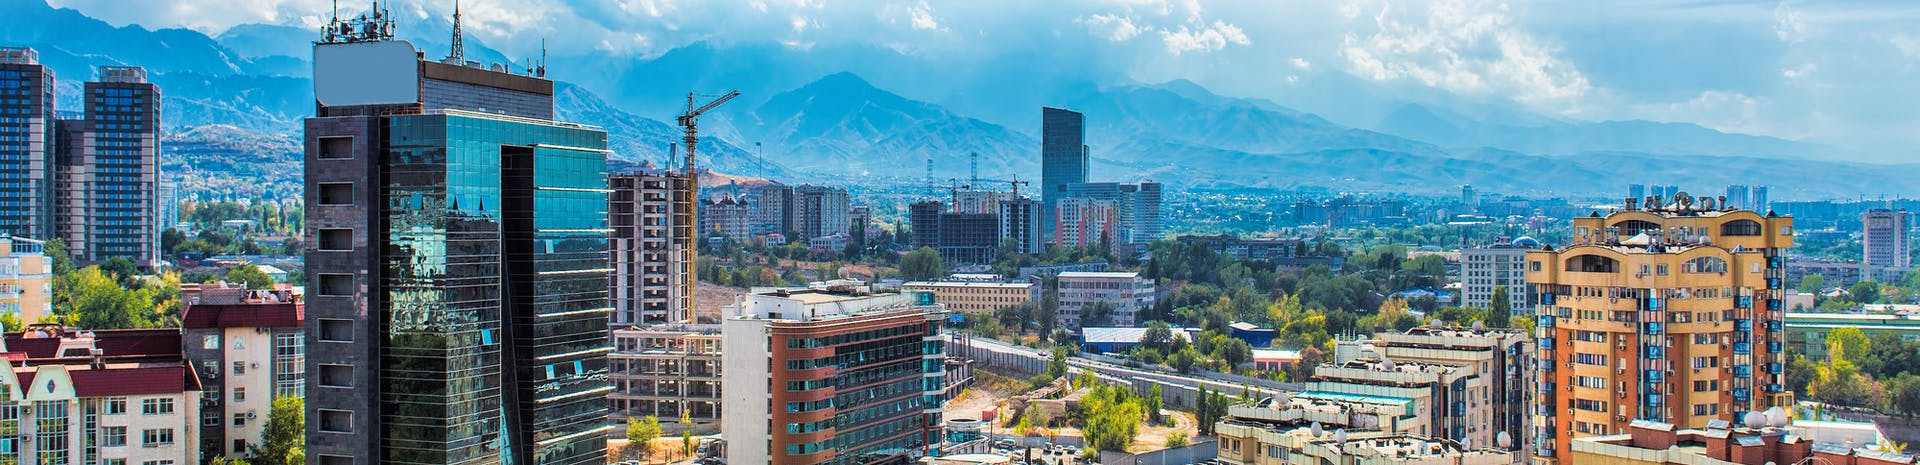 Picture of Almaty